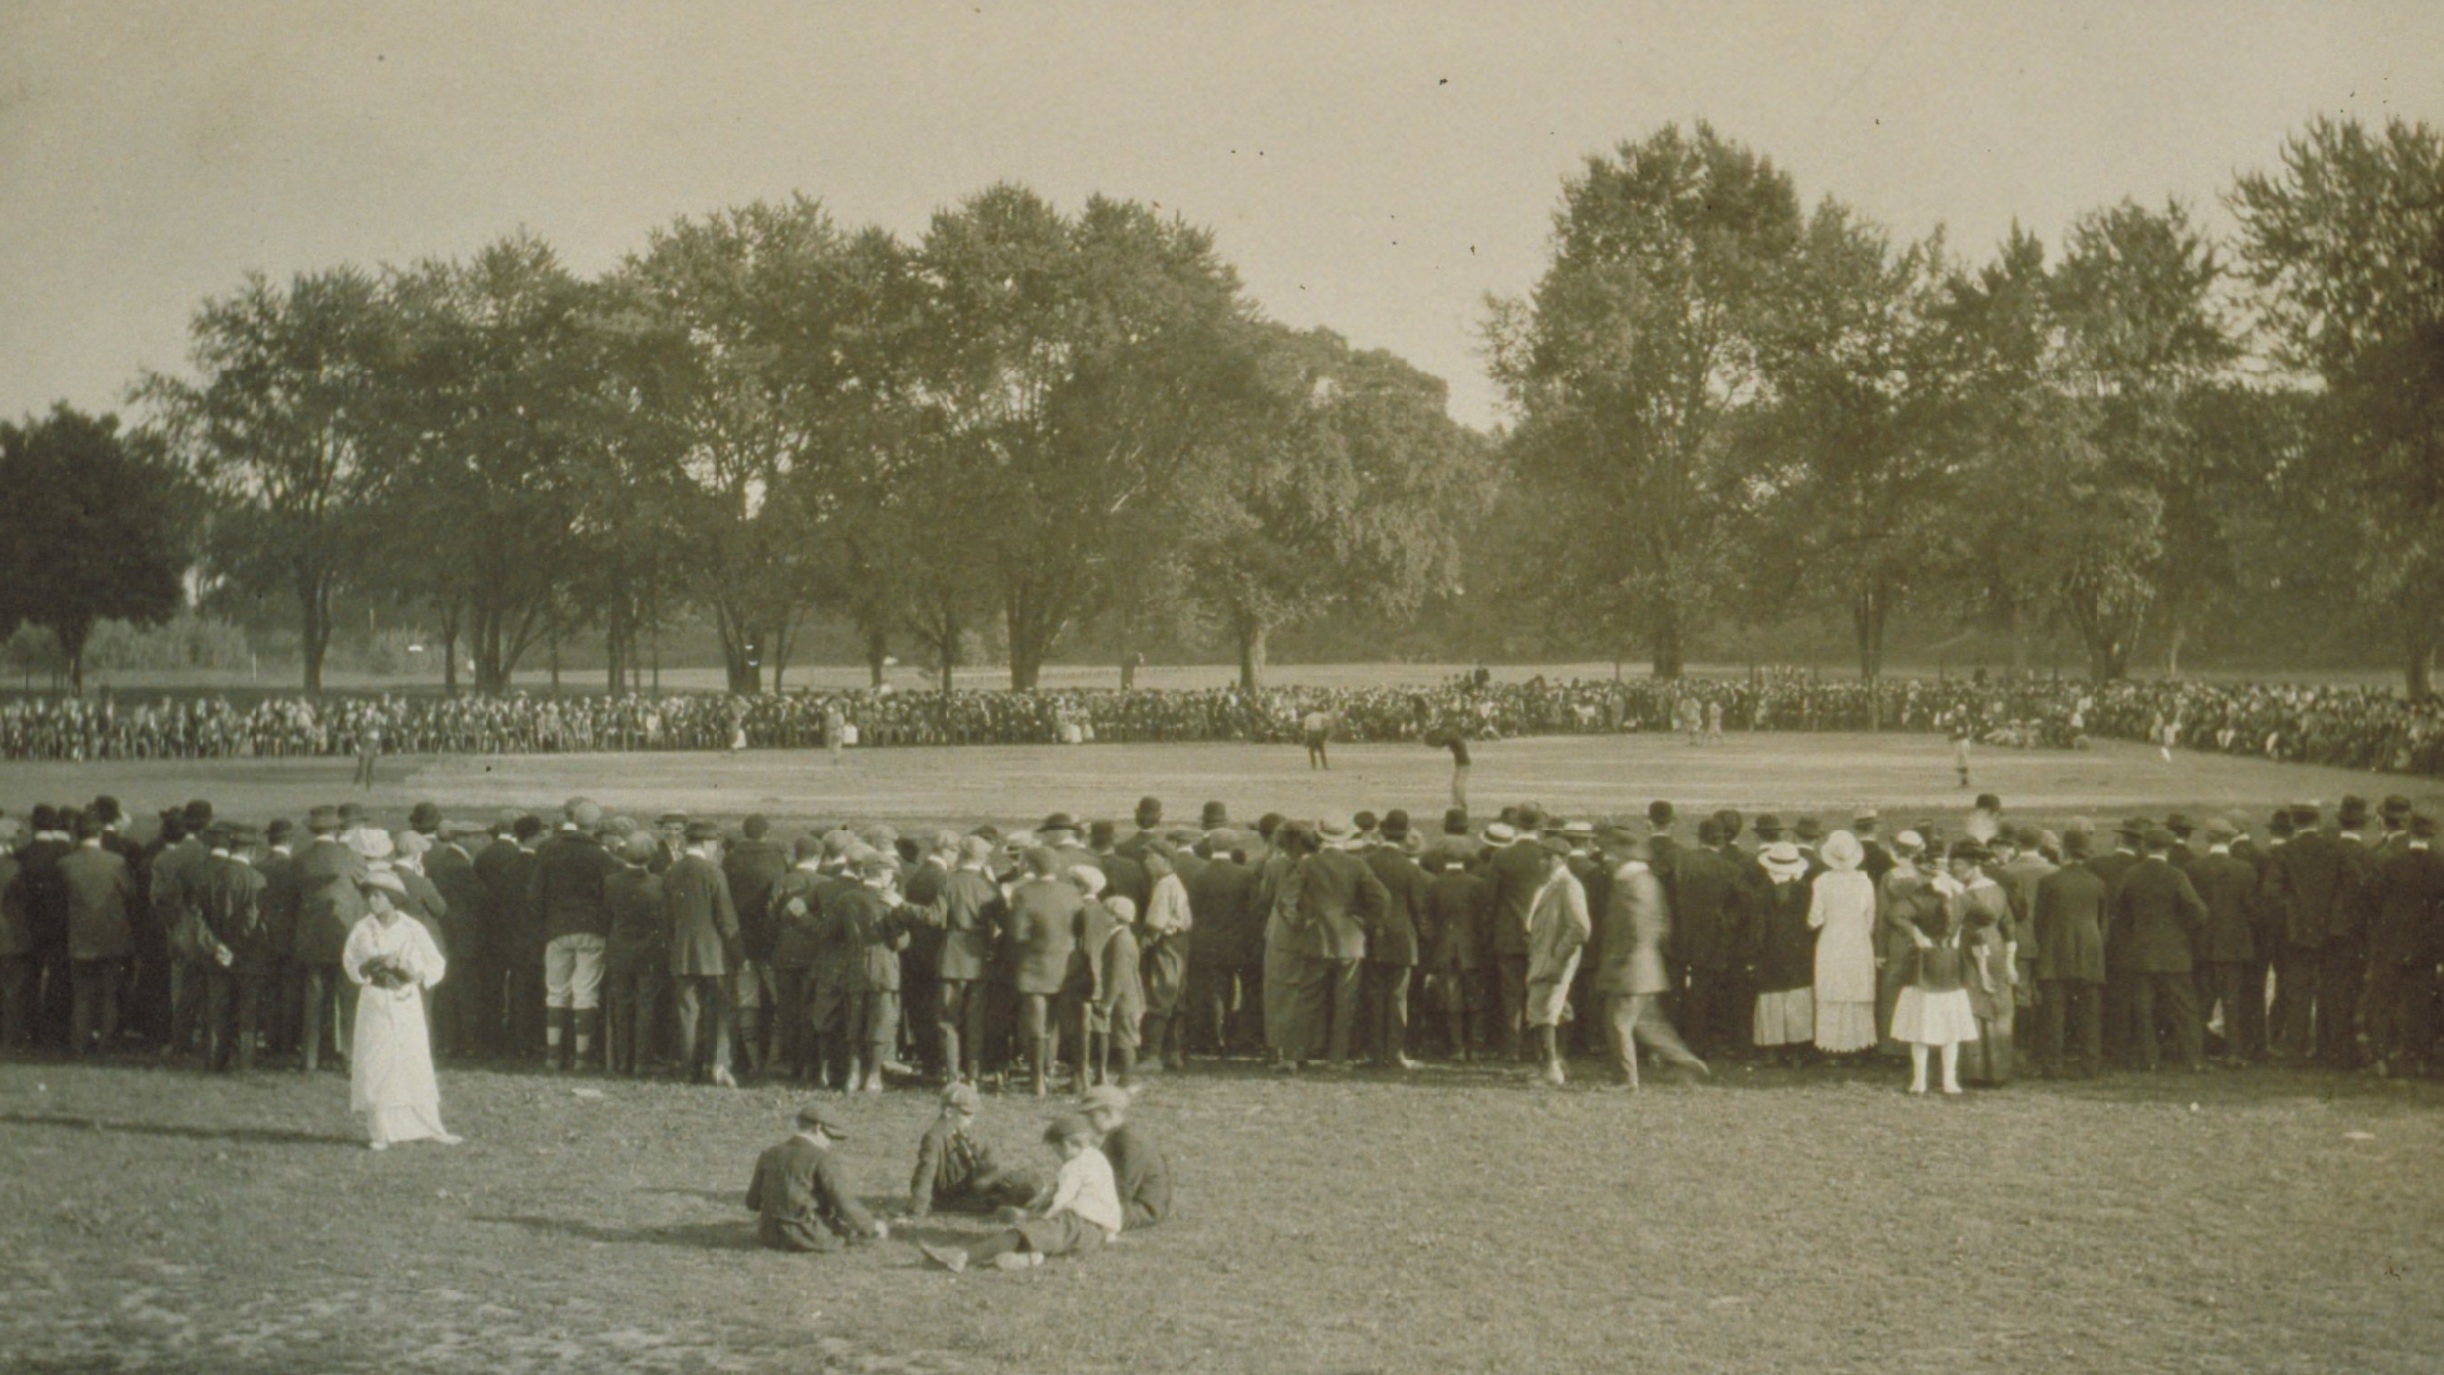 Colt Park, Hartford, Connecticut, 1914.